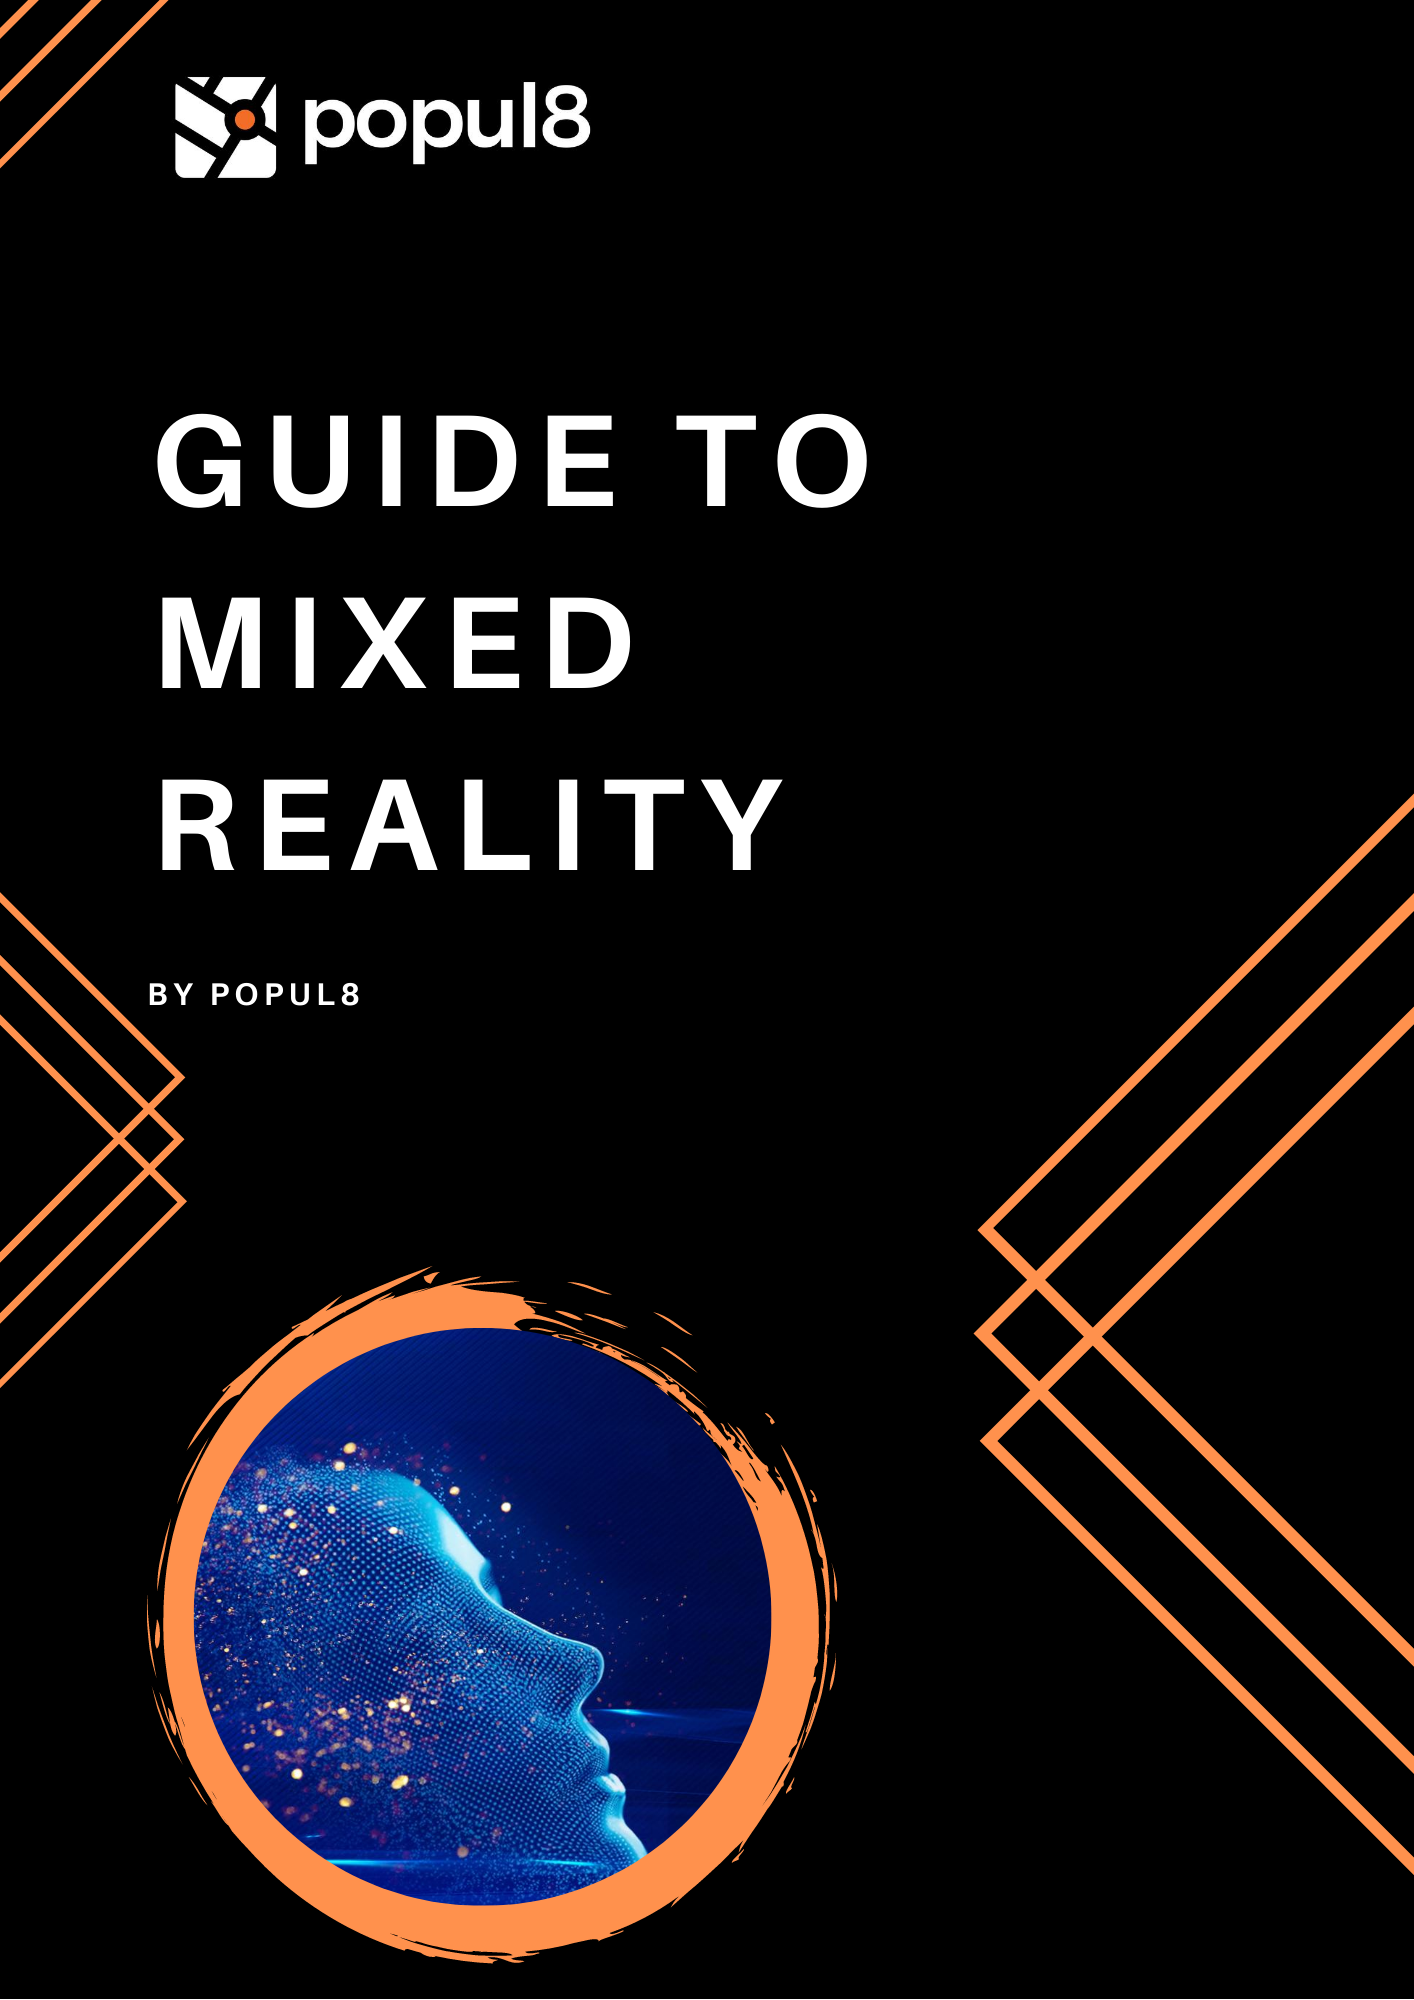 Guide to Mixed Reality Article